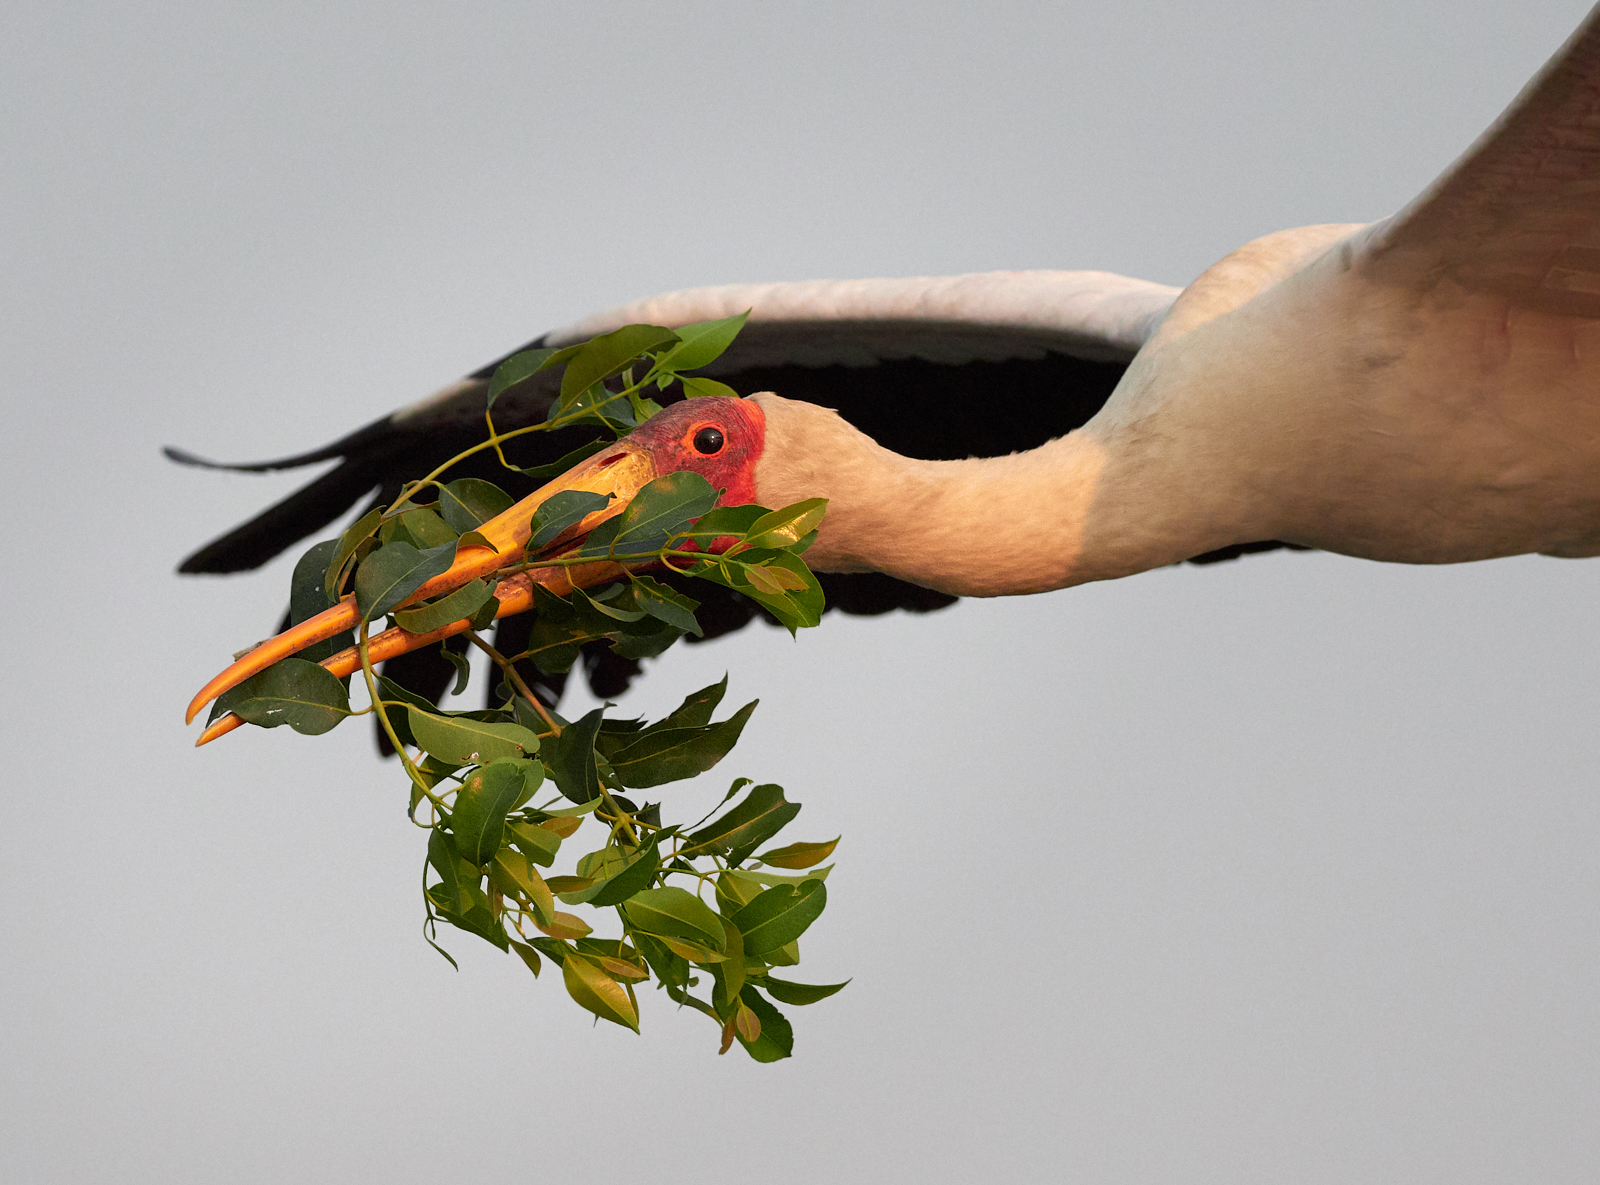 Yellow billed stork with leafy branch 1600x1200 sRGB.jpg